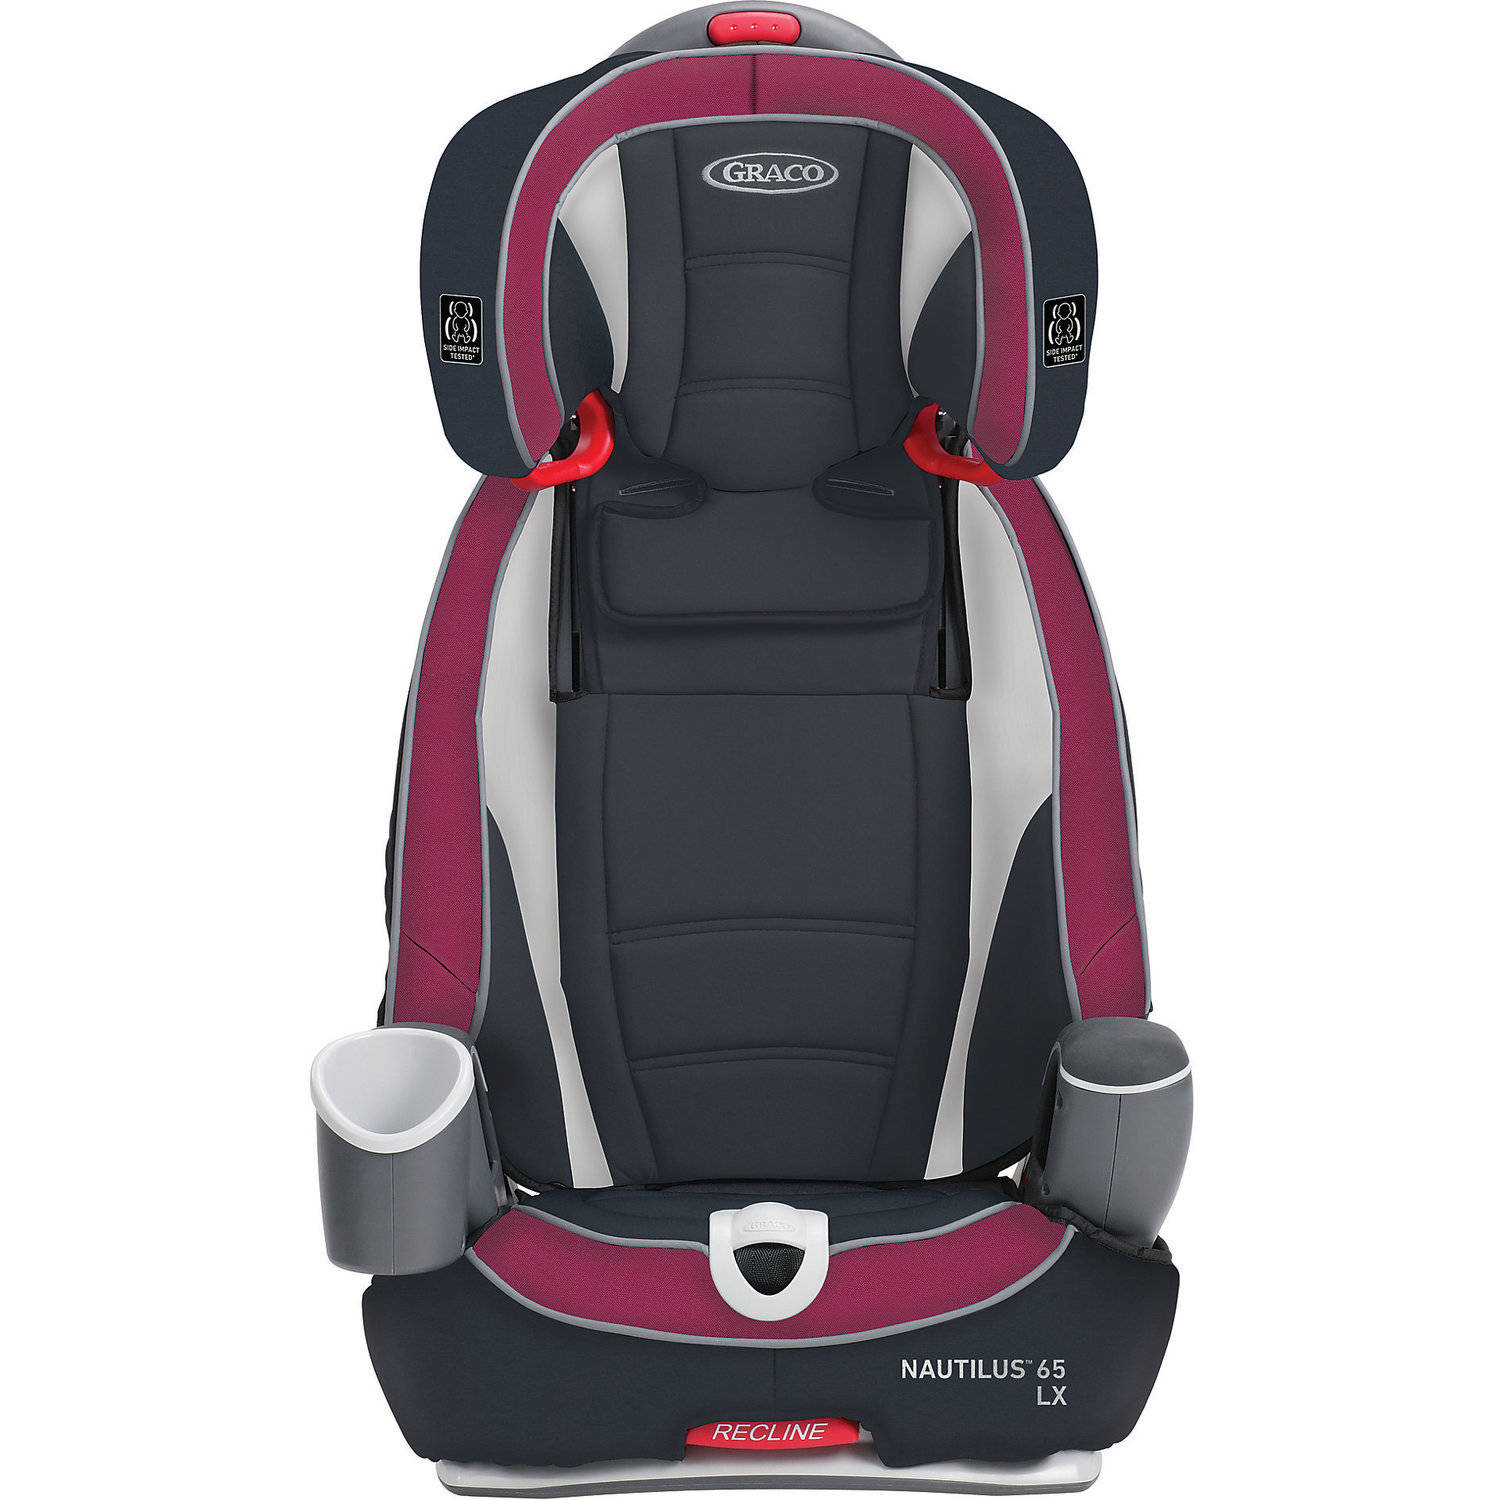 Graco Nautilus LX 65 3-in-1 Harness Booster, Choose Your Color | eBay